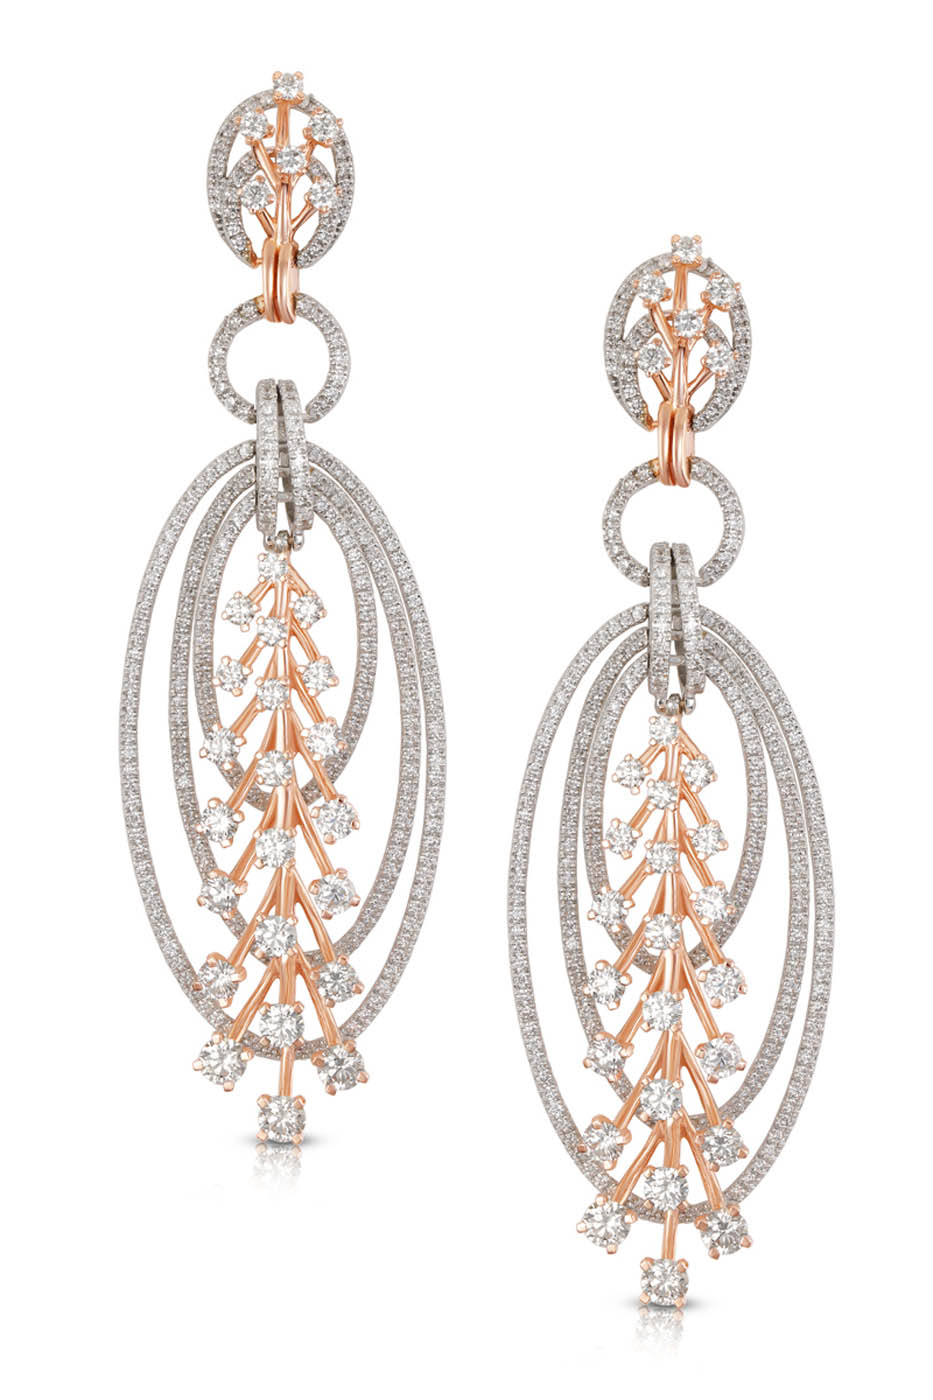 Show-Stopping Forevermark Diamond Jewellery Shines in Hollywood